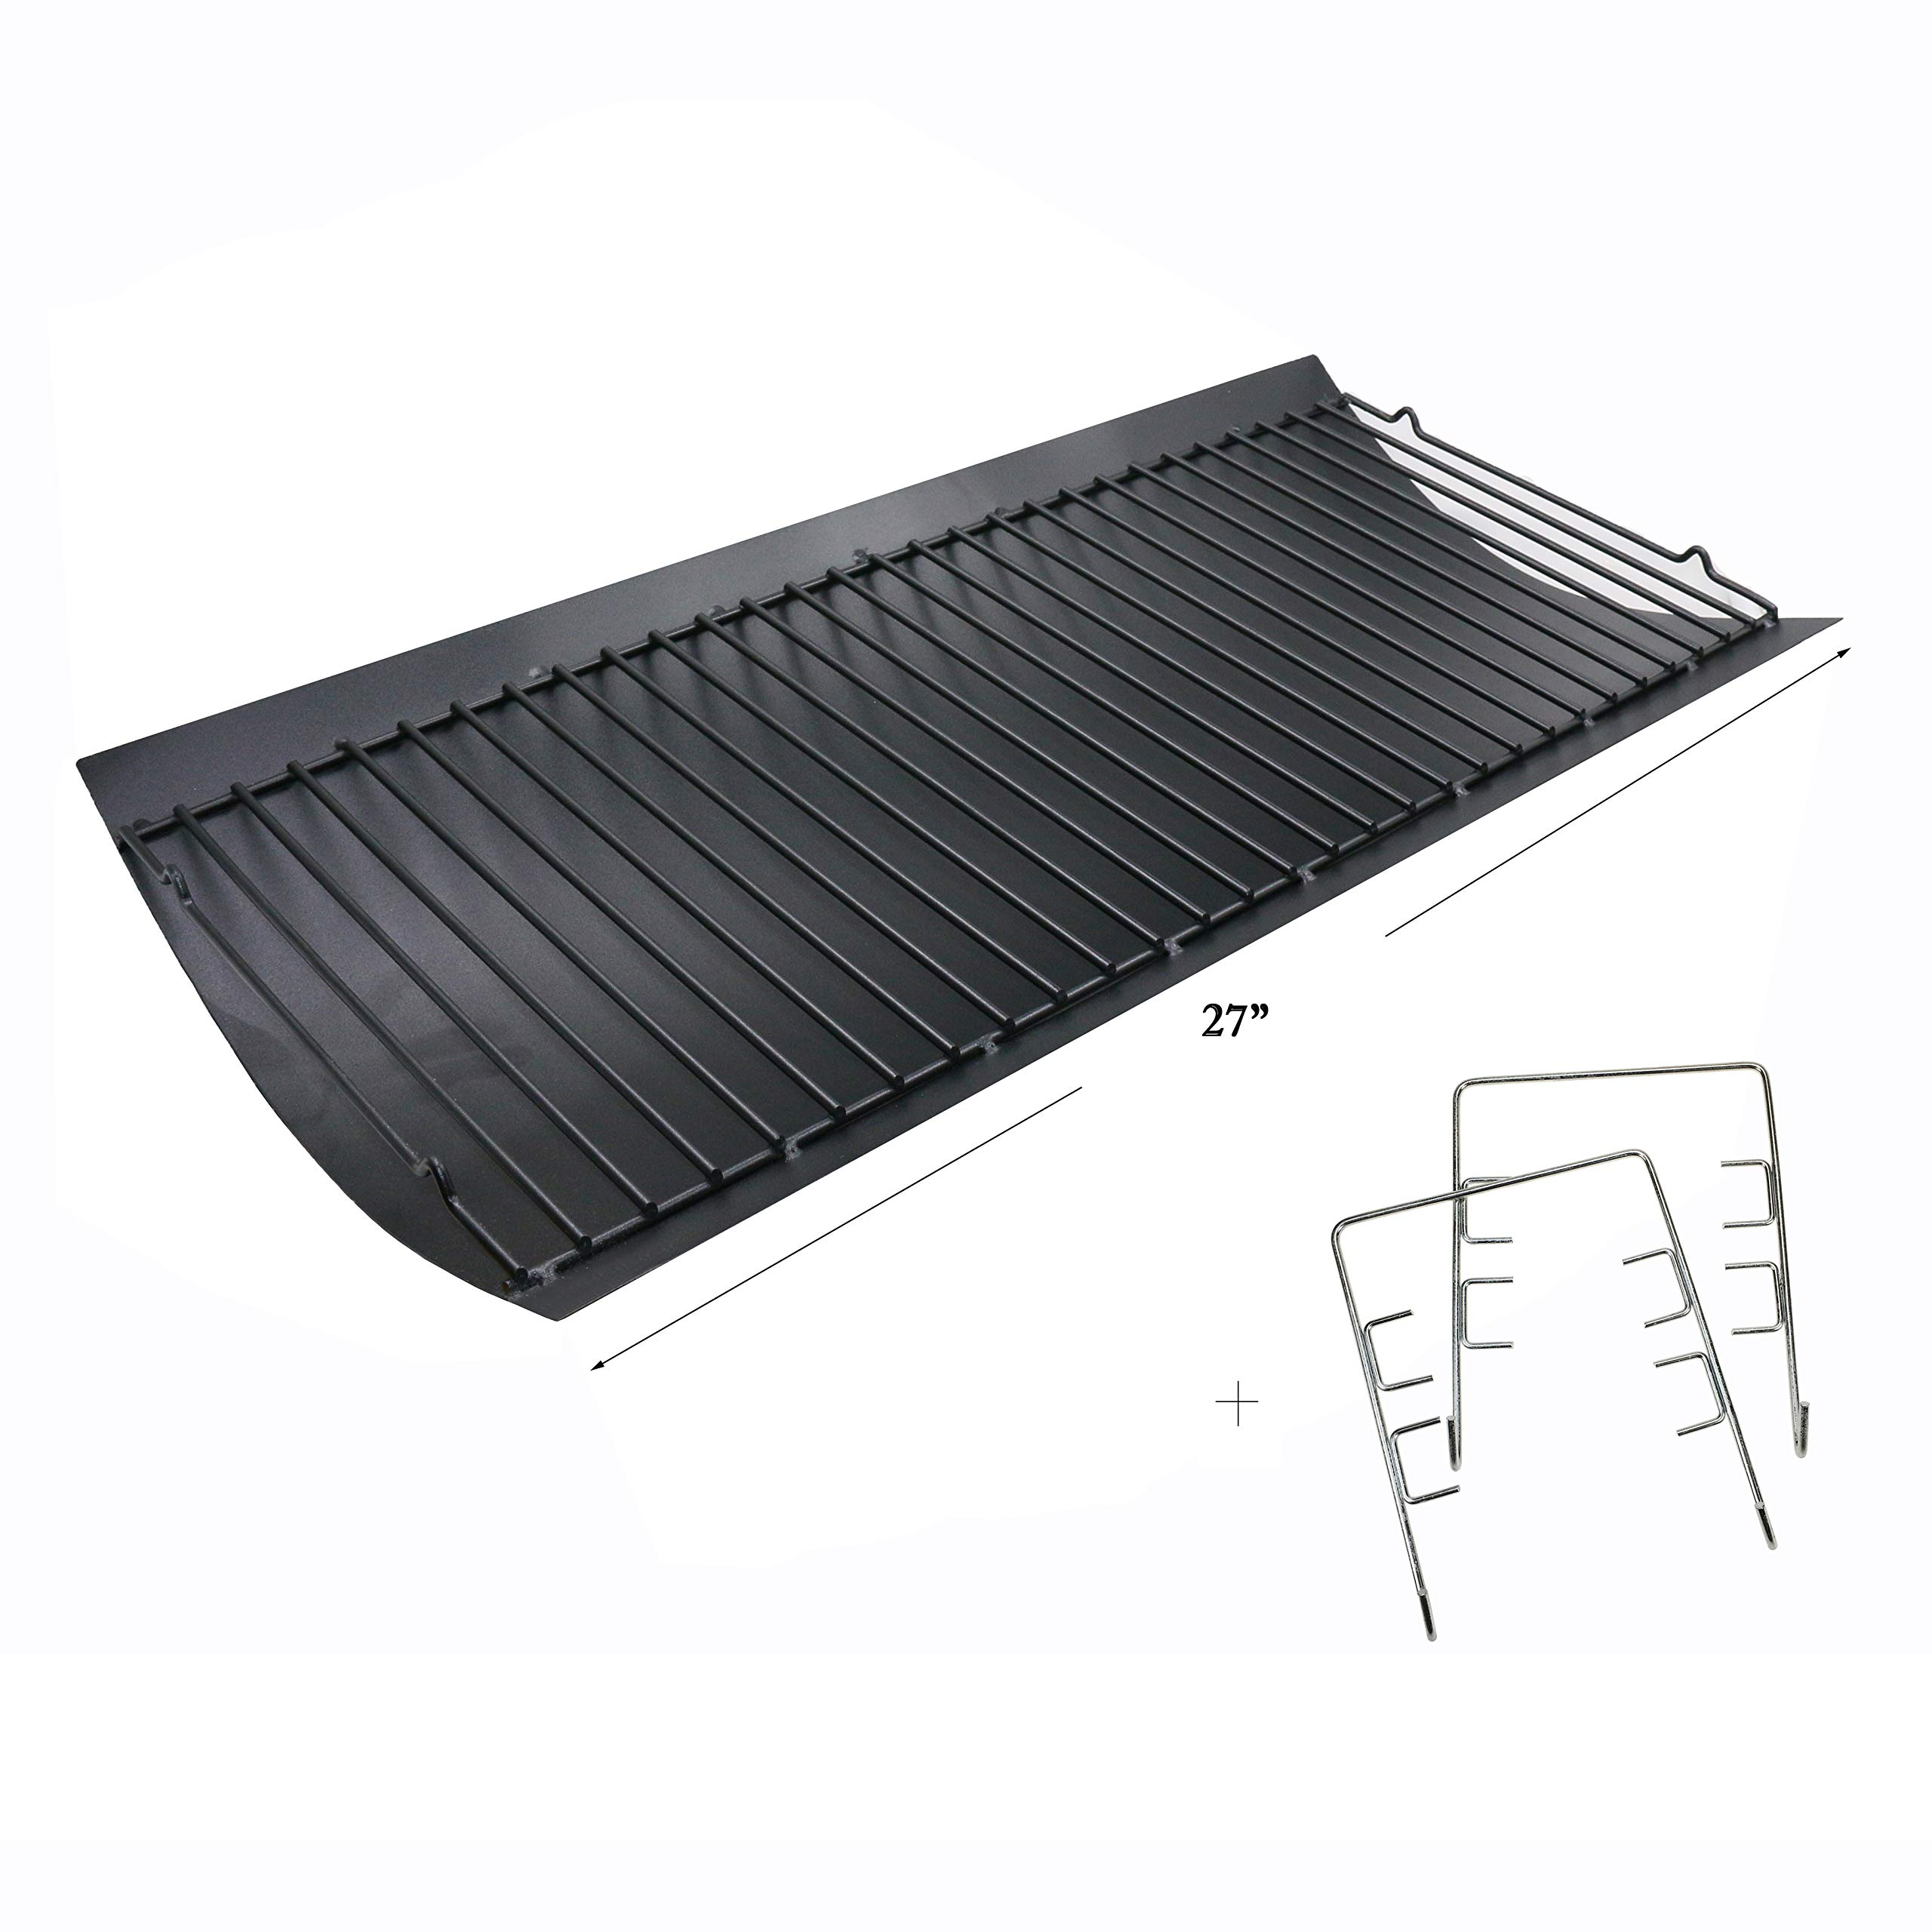 Hisencn 27 inch Ash Pan Repair Parts for Chargriller 1224, 1324, 2121, 2222, 2727, 2828, 2929 Charcoal Grills, Charbroil 17302056, 27'' Drip Pan Grates Replacement Part with 2pcs Fire Grate Hanger by Hisencn